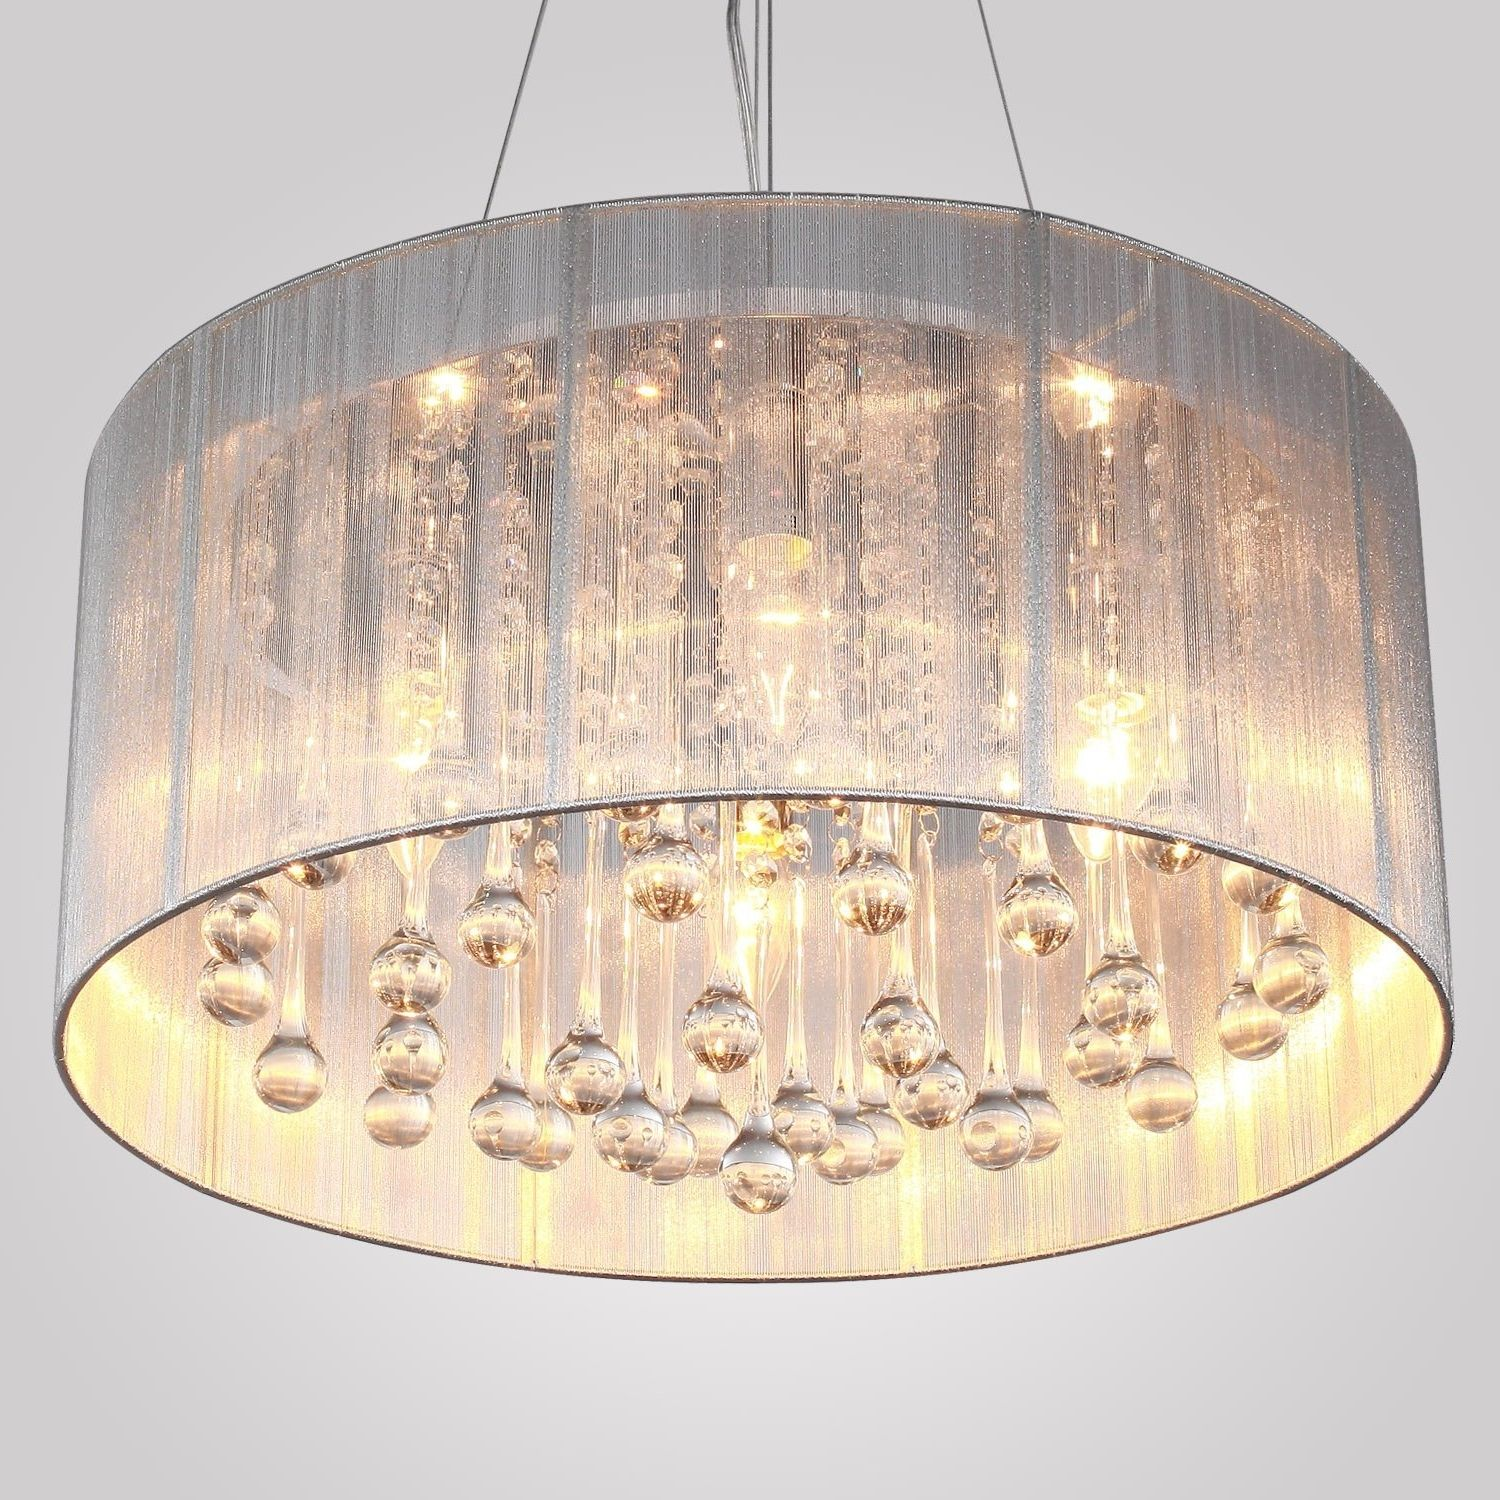 Explore Gallery Of Extra Large Chandelier Lighting 8 Of 20 Ceiling Lamp Shades Pendant Light Fixtures Antique Lamp Shades